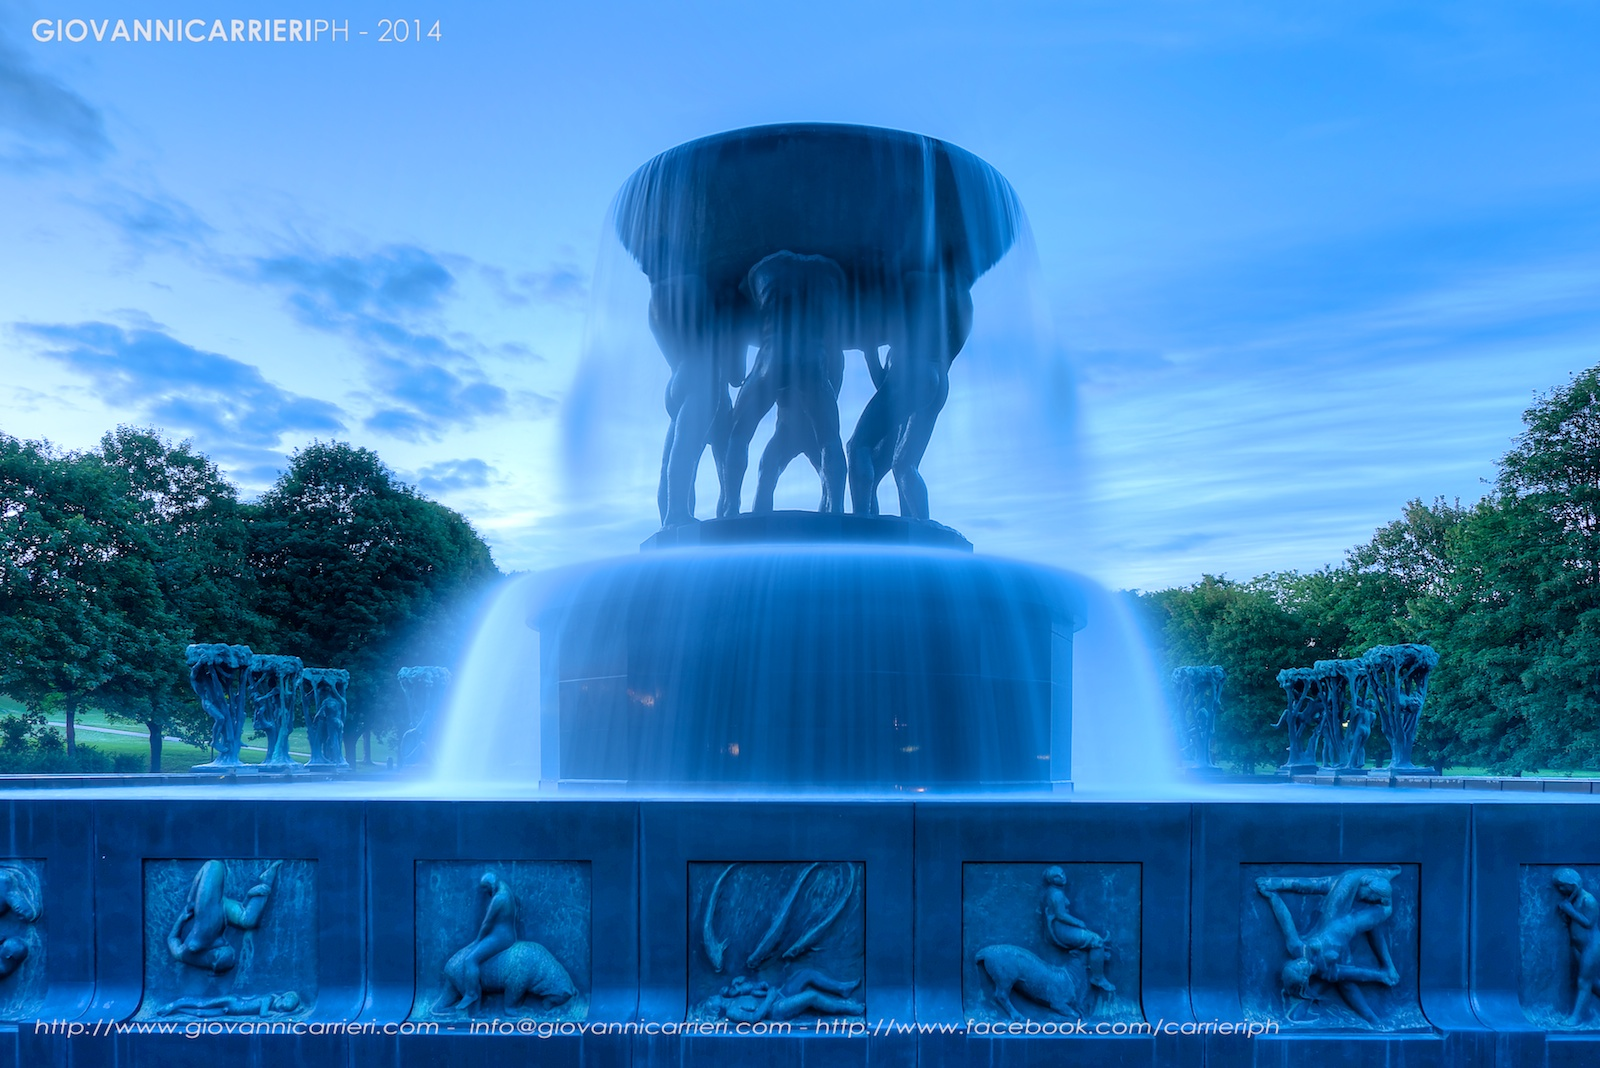 The fountain of Gustav Vigeland, Forgner Park, Oslo